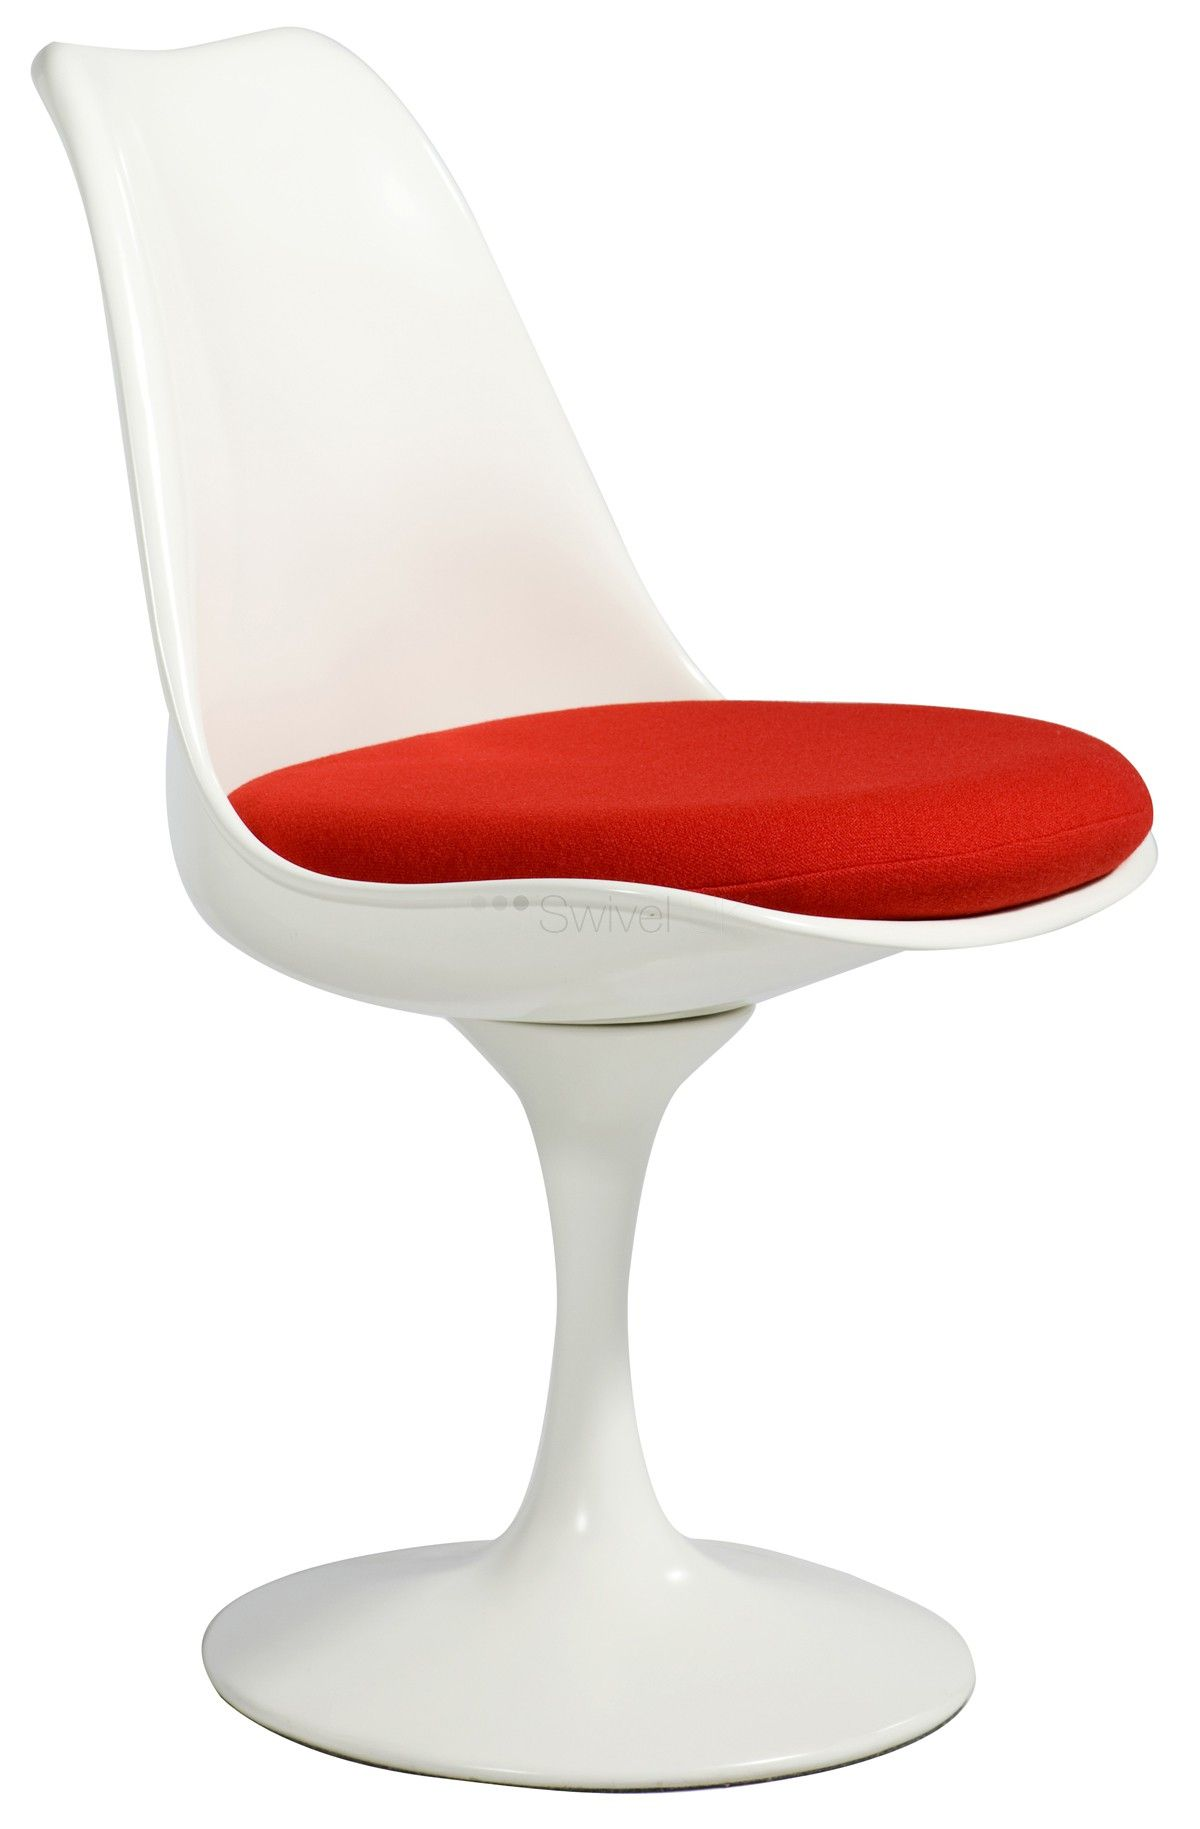 Lovely Tulip Style Chair Fibreglass: Eero Saarinen Style Designer Tulip Style Chair  Fibreglass Finest Quality Materials Just From Swivel UK: Buy Online Now:  Fast ...